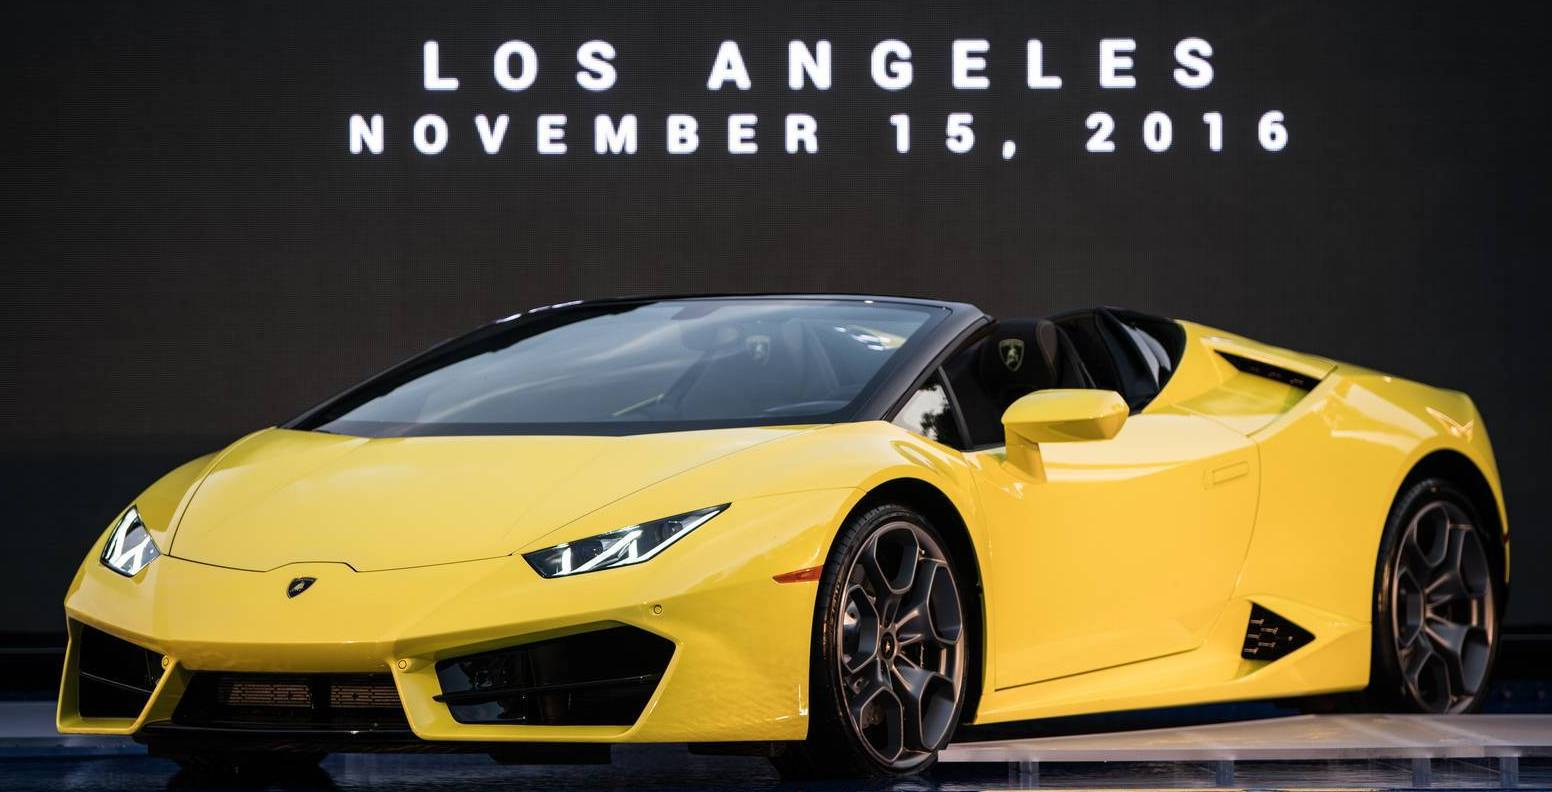 Lamborghini Huracan Spyder RWD with a Price Tag of Rs 3.45 Cr Launched in India